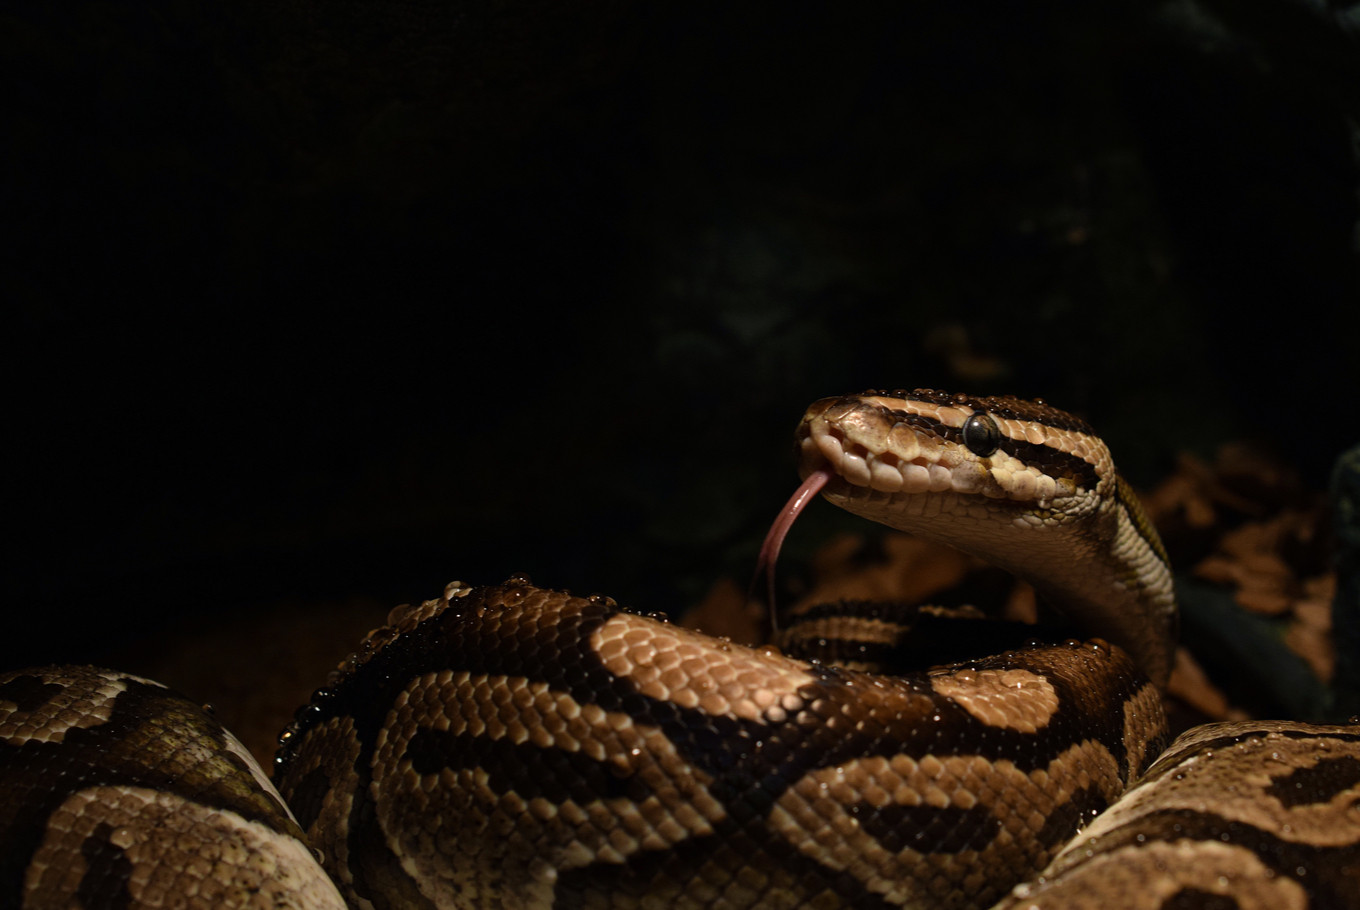 Snakes, turtles from China among live animal imports that Indonesia will soon ban